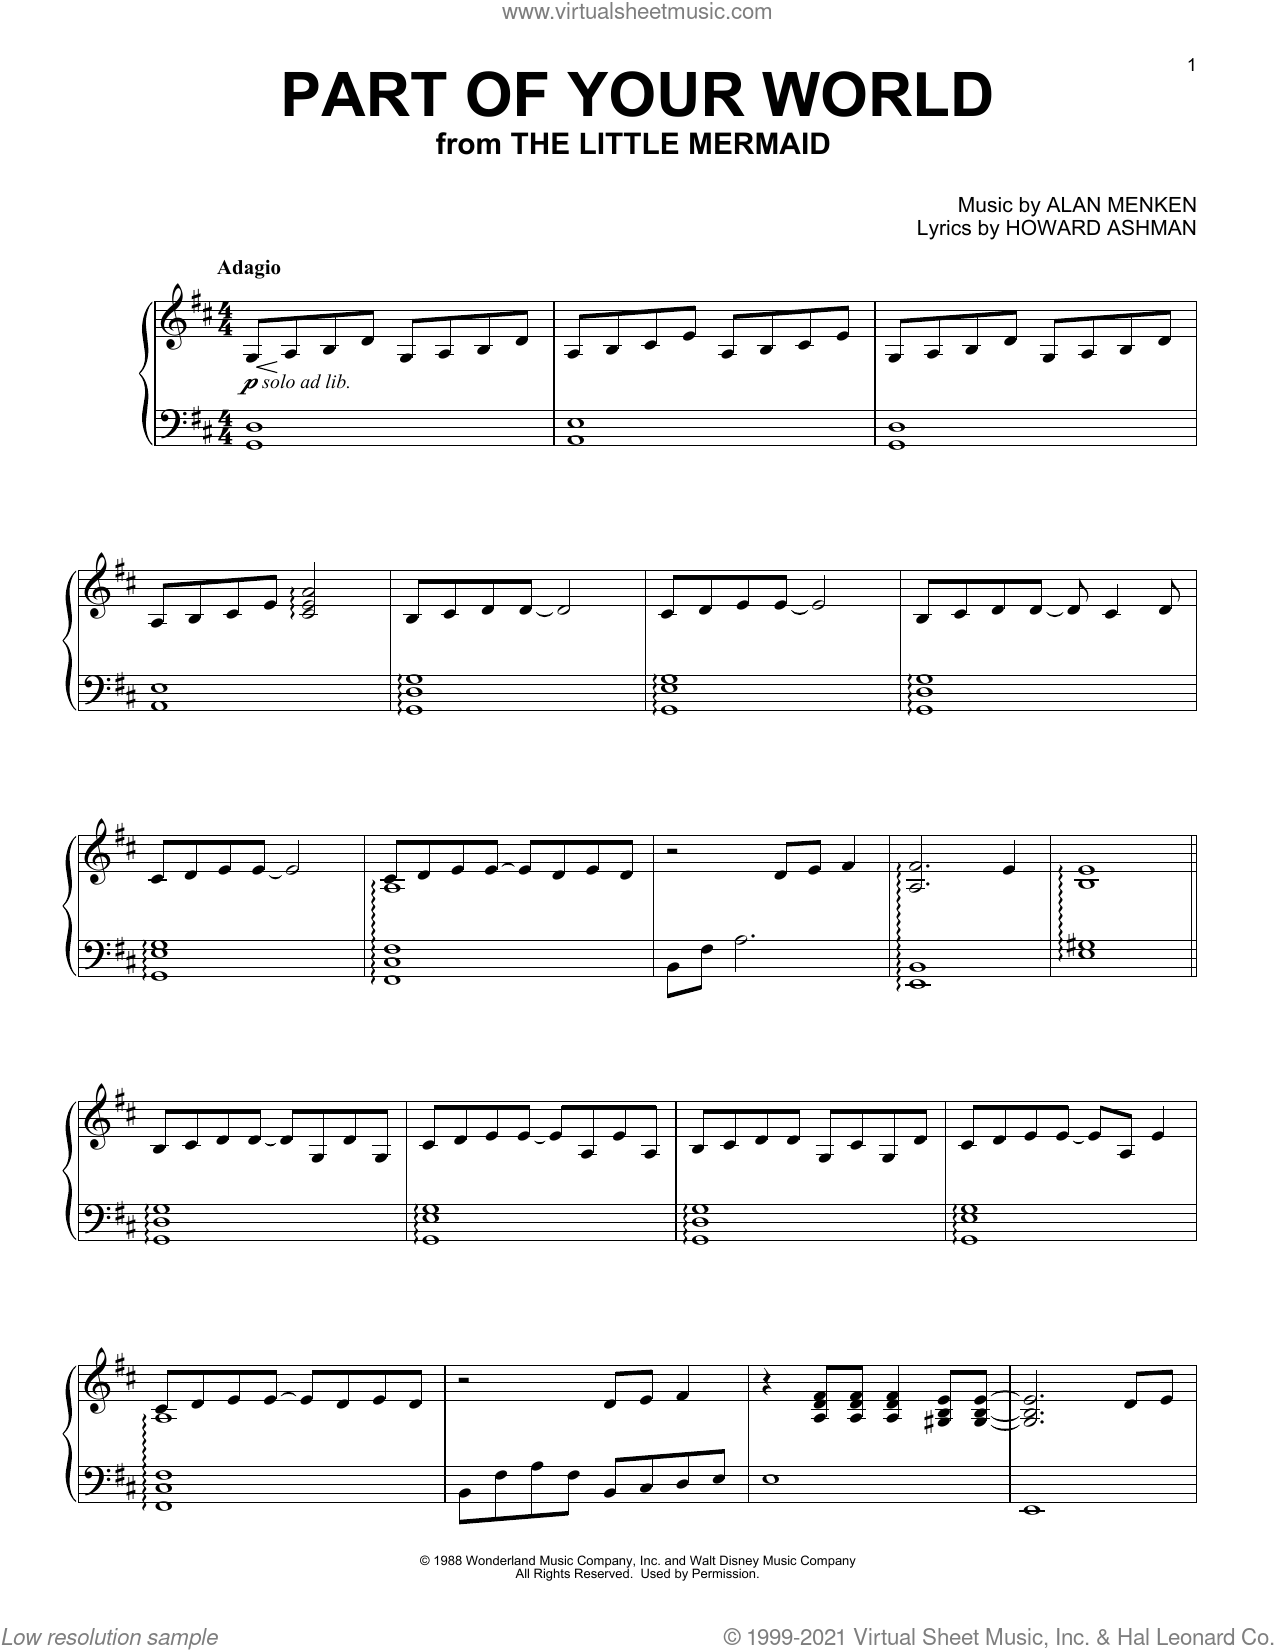 Part Of Your World (from The Little Mermaid) [Classical version] sheet music for piano solo by Alan Menken, Kaori Muraji and Howard Ashman, classical score, intermediate skill level